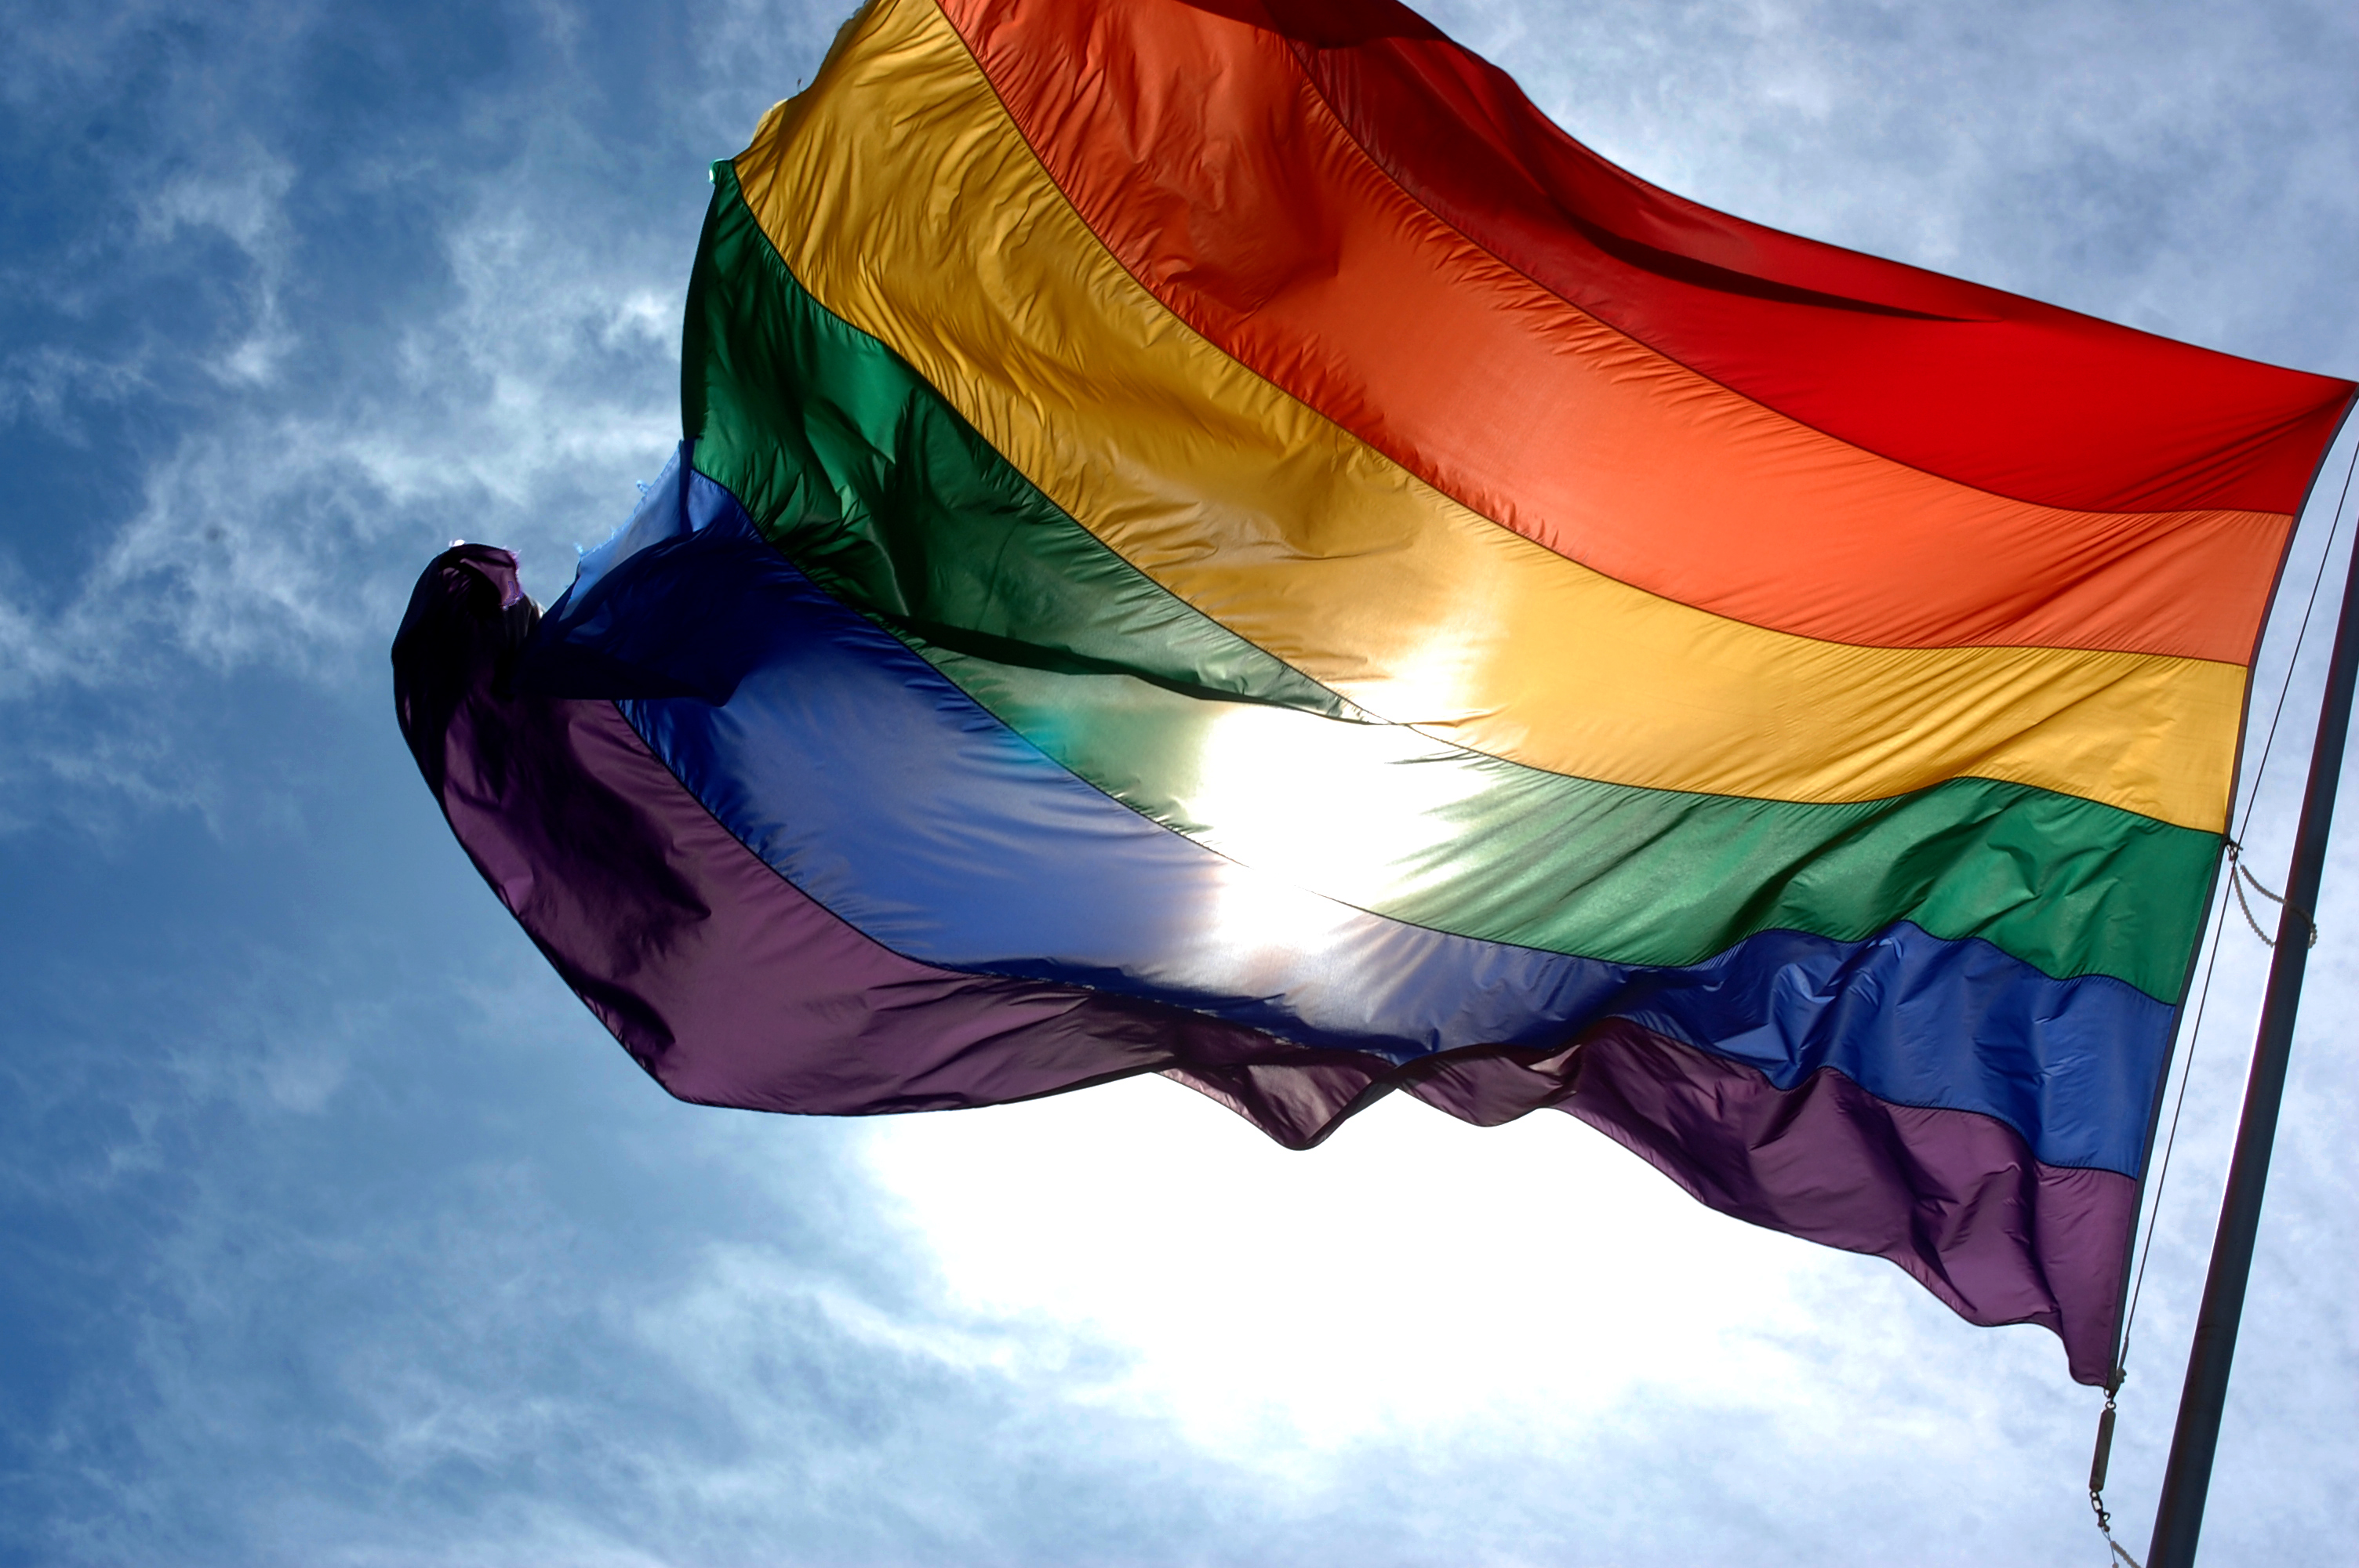 An image of the LGBT rainbow flag.